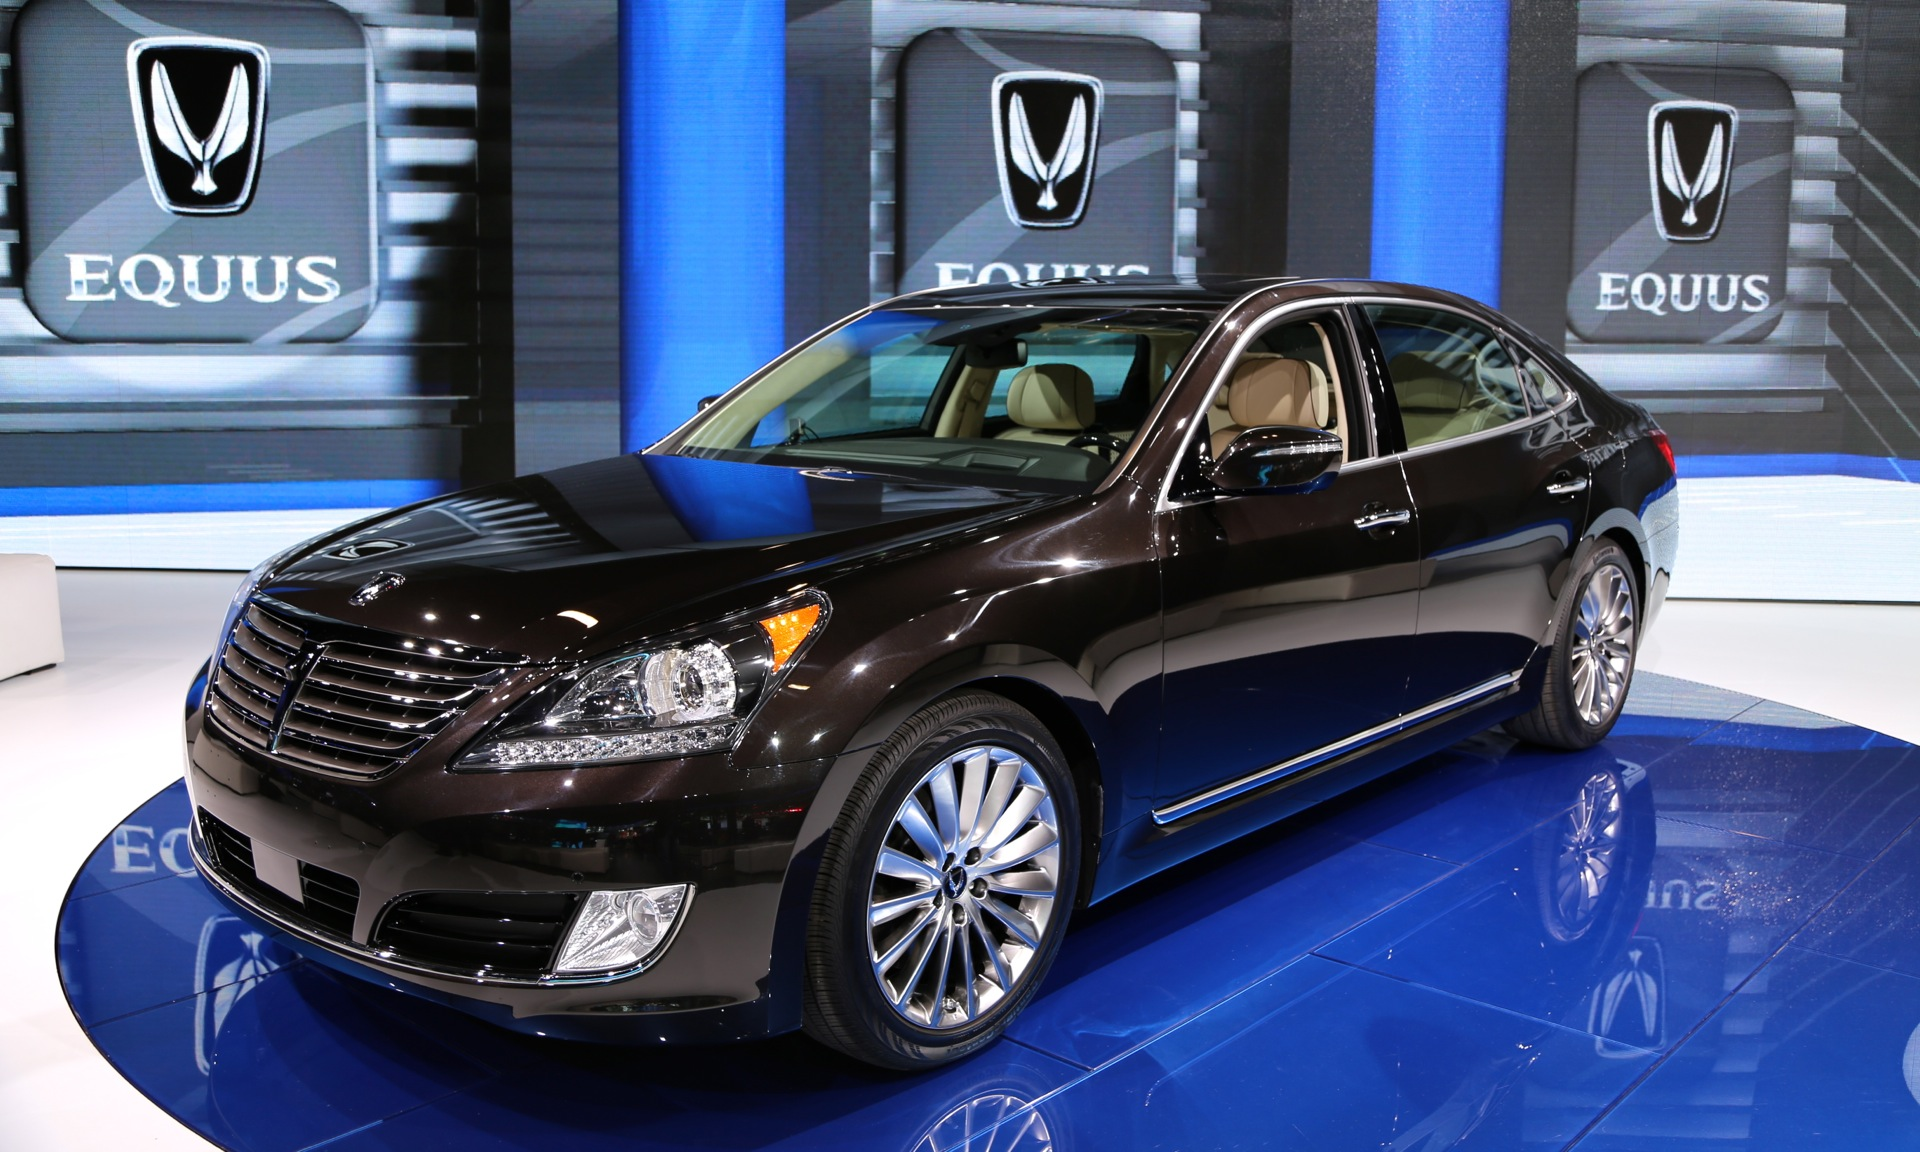 2014 hyundai equus first u s photos live from the ny auto show. Black Bedroom Furniture Sets. Home Design Ideas